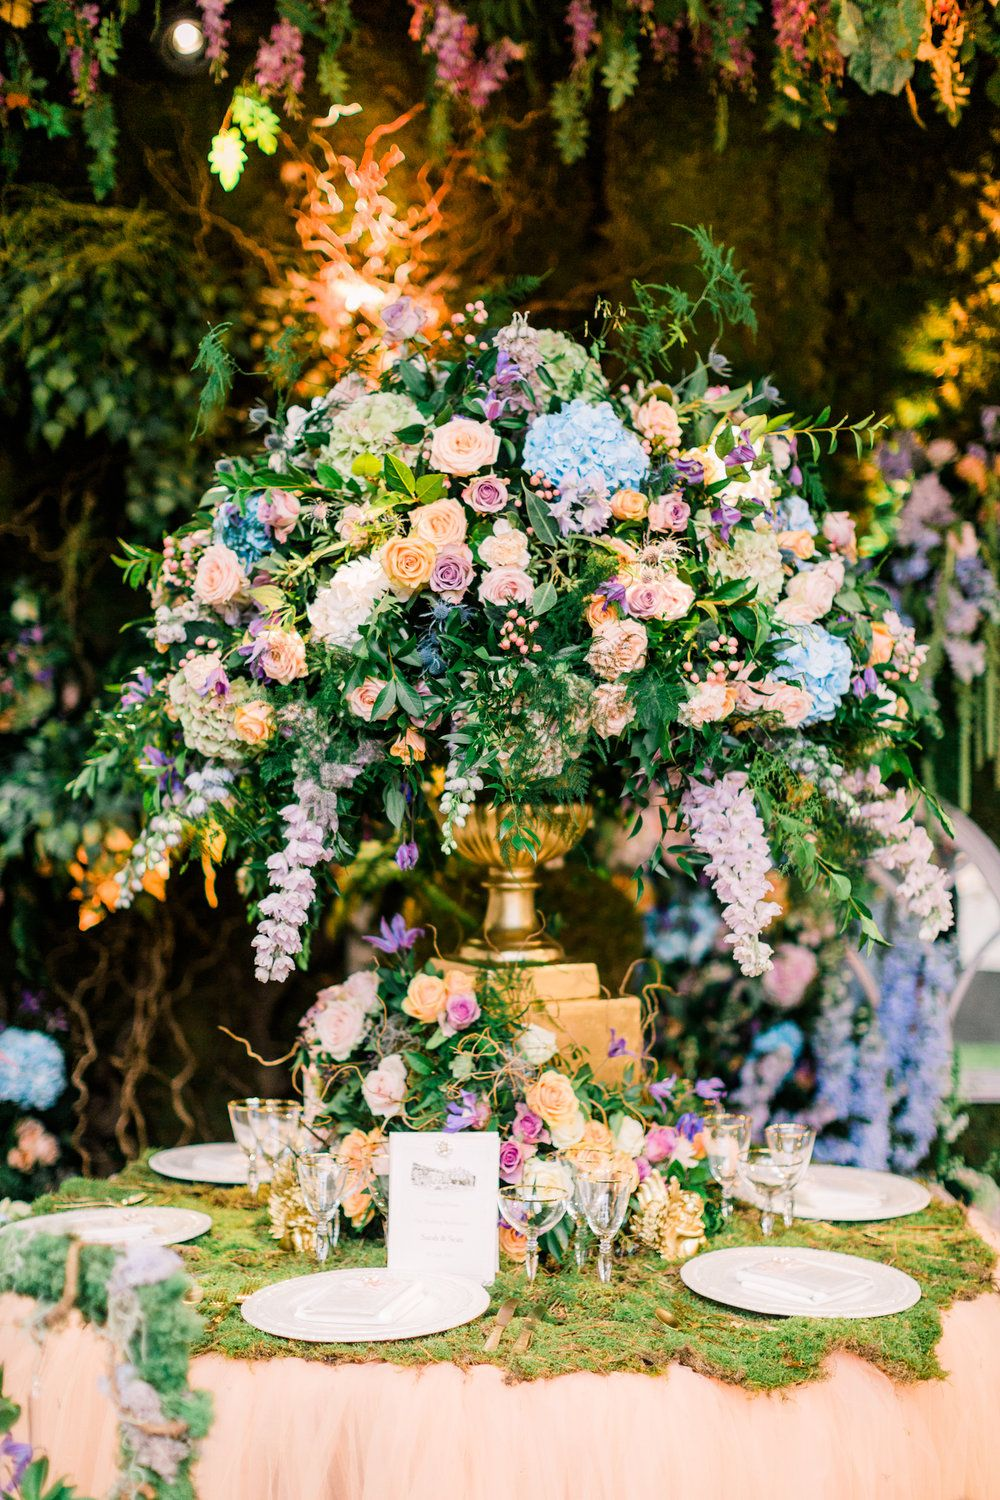 Enchanted Garden Wedding Theme Floral Inspiration - with Amie Bone ...